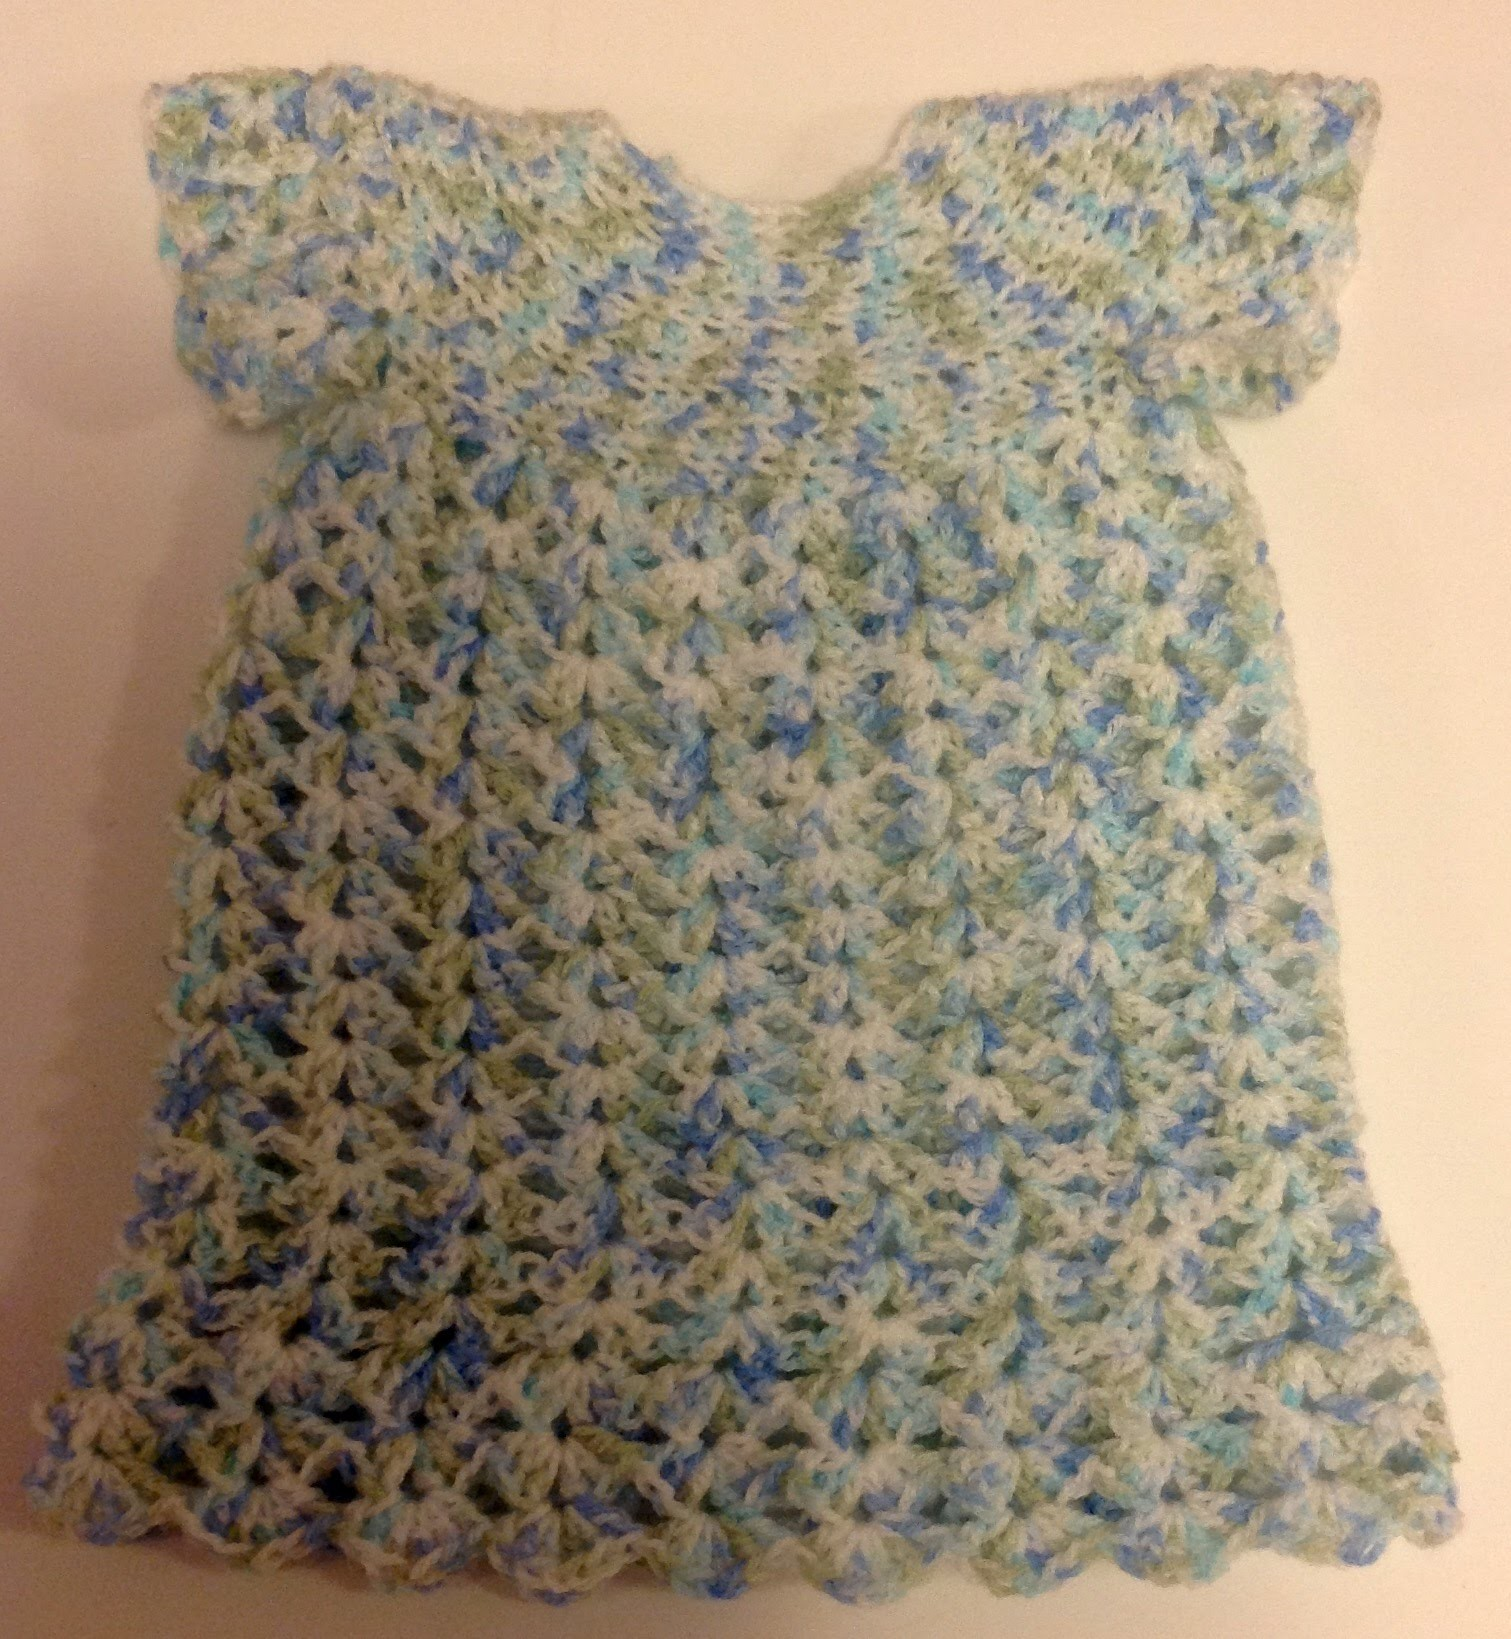 "Bedtime for Dolls - Nightgown for 18"" Dolls Crochet Pattern Tutorial Part 1"